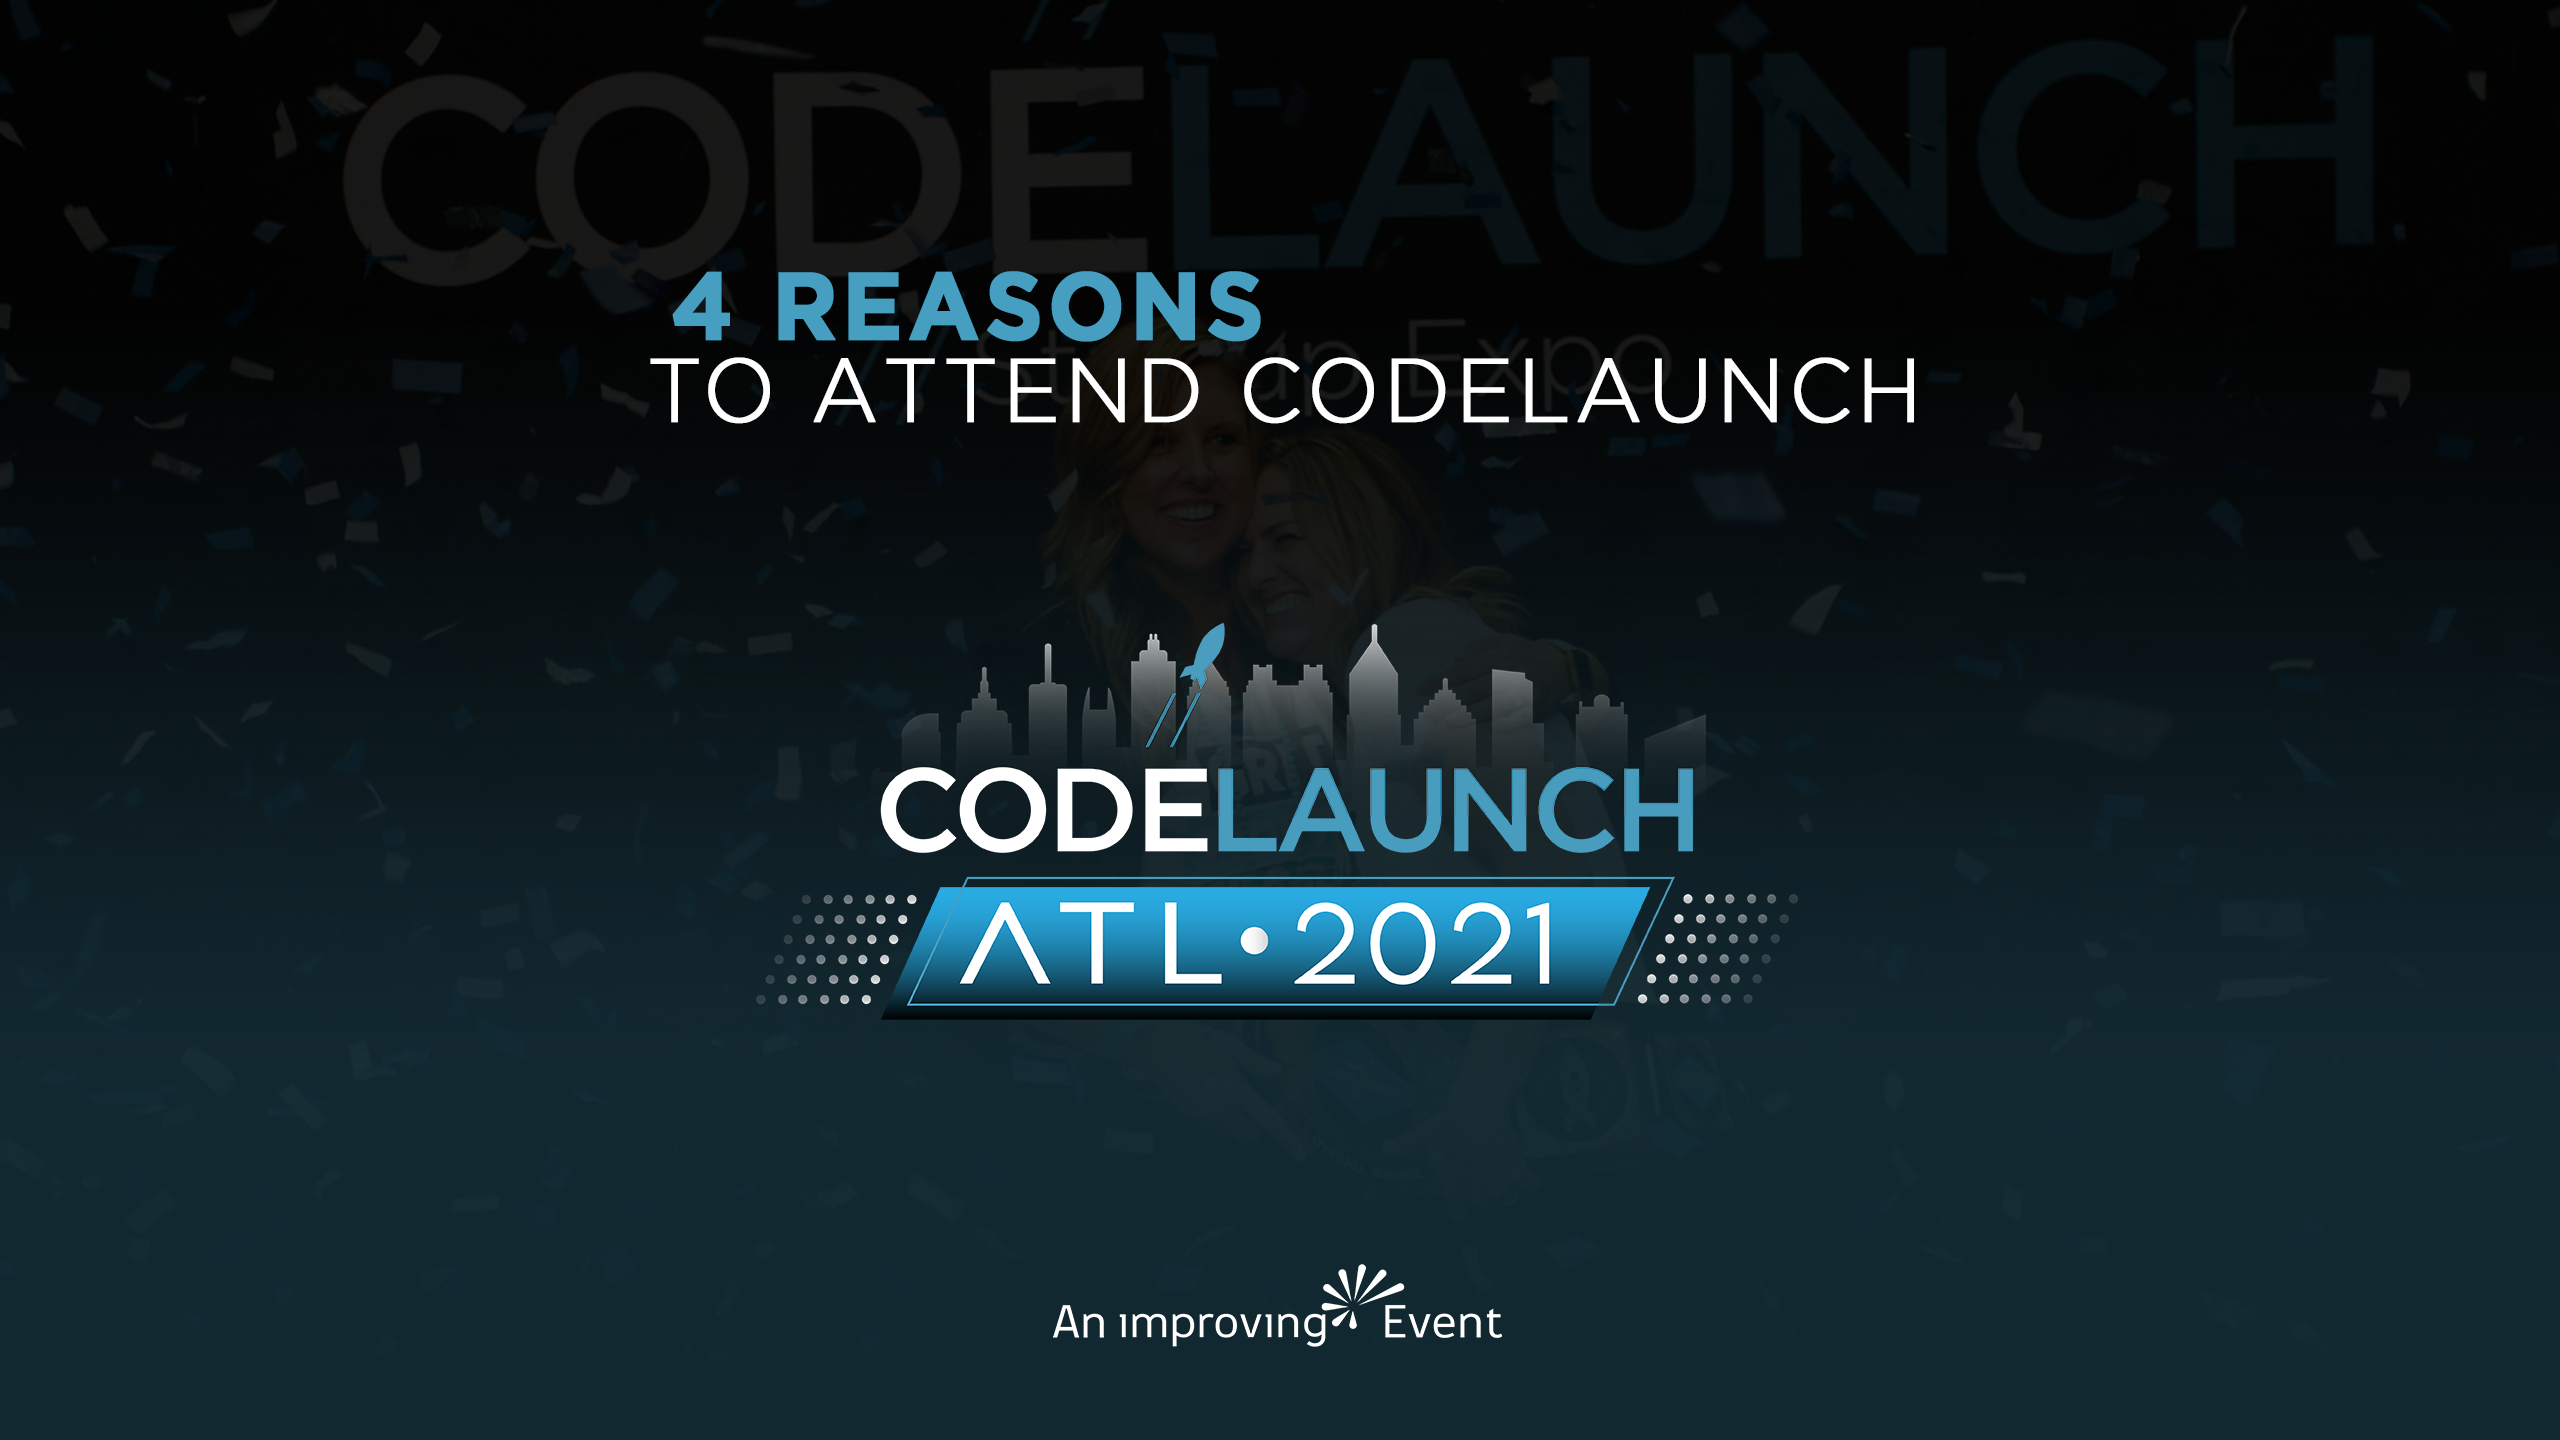 4 Reasons to Attend CodeLaunch ATL 2021